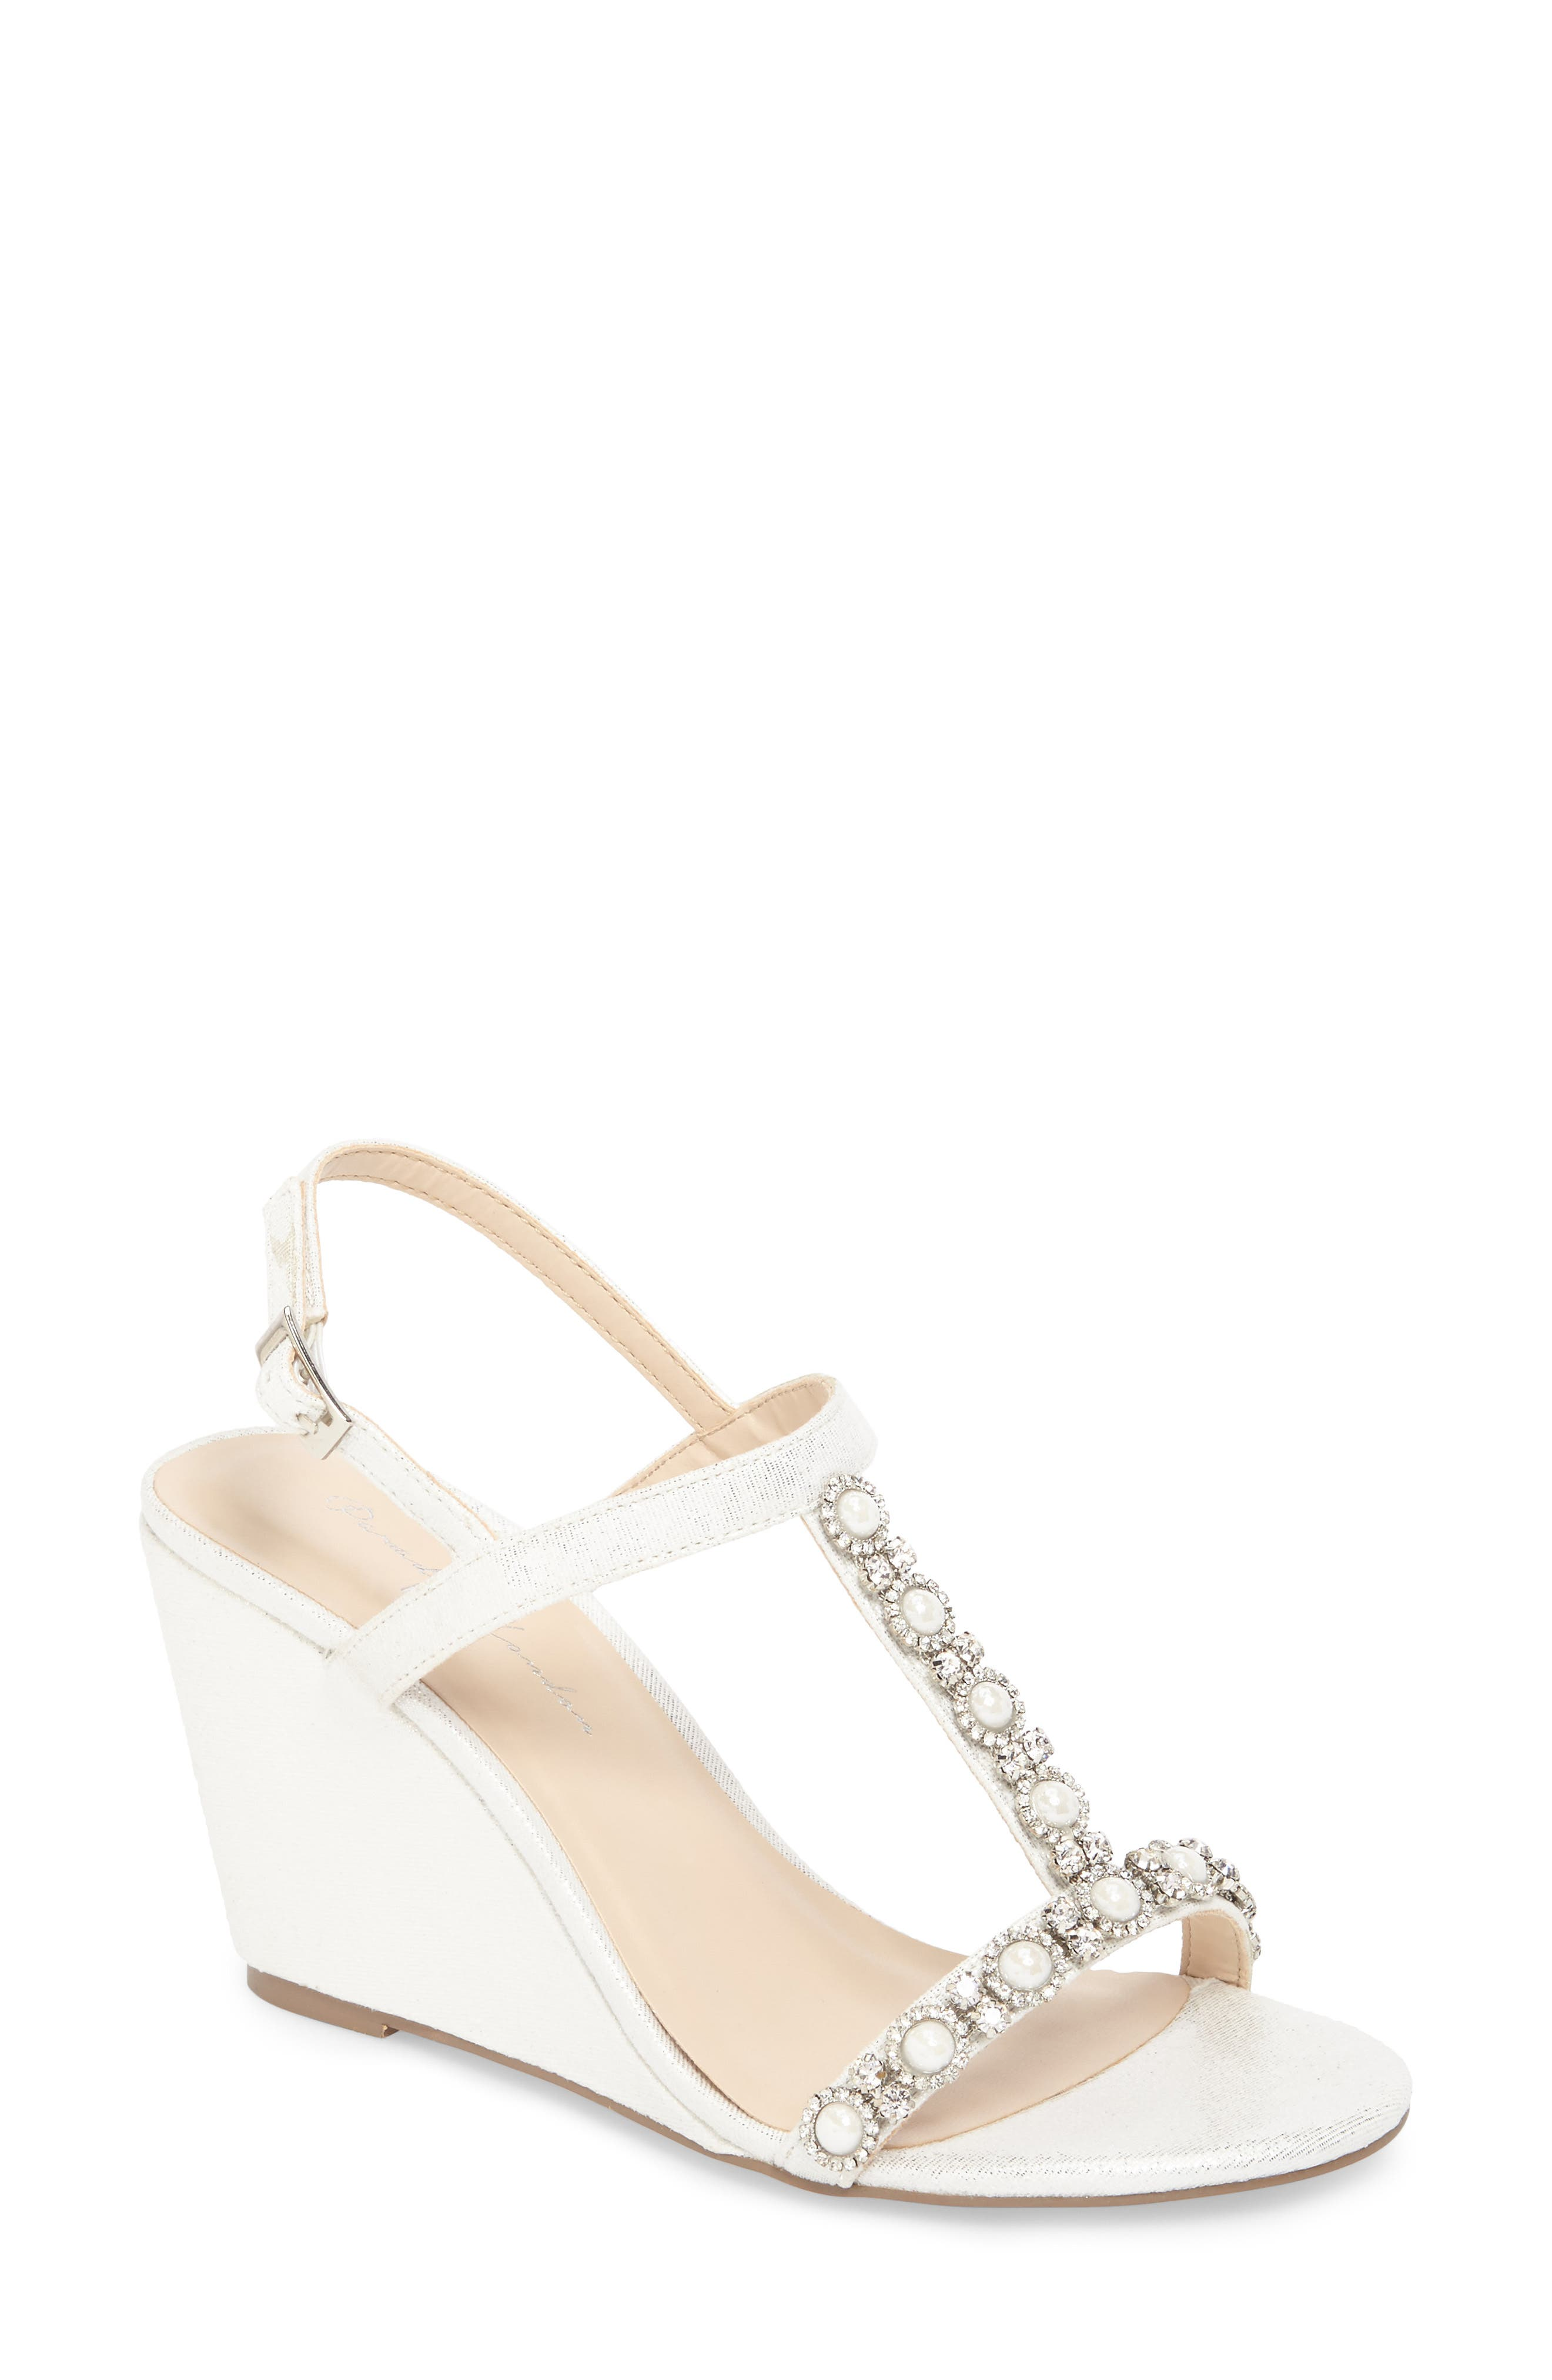 Kiana Embellished Wedge Sandal,                             Main thumbnail 1, color,                             Silver Glitter